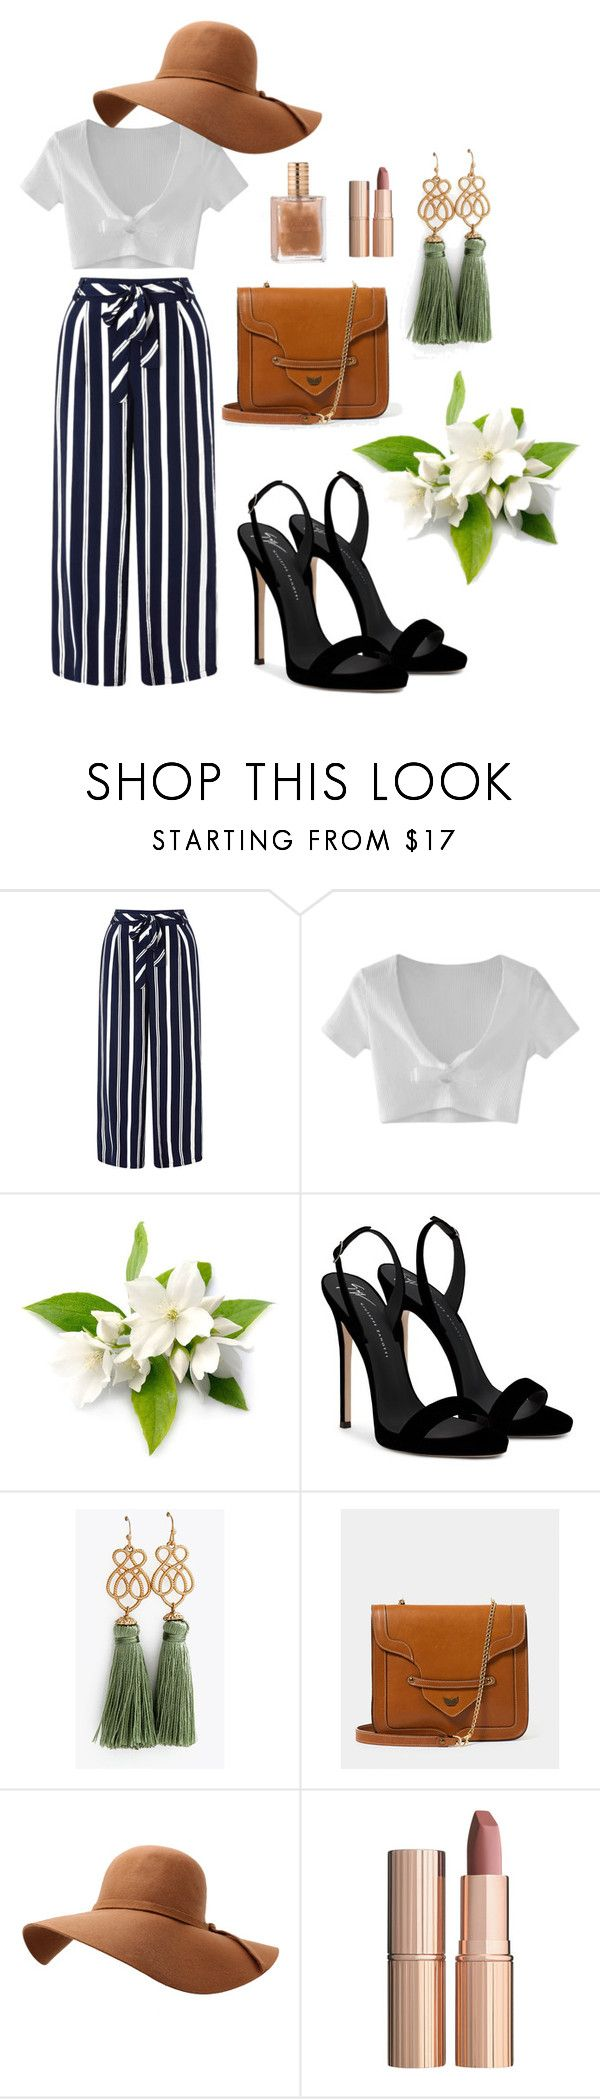 """""""summer outfit"""" by trinh131096 on Polyvore featuring mode, Monsoon, WithChic, Giuseppe Zanotti et Charlotte Tilbury"""